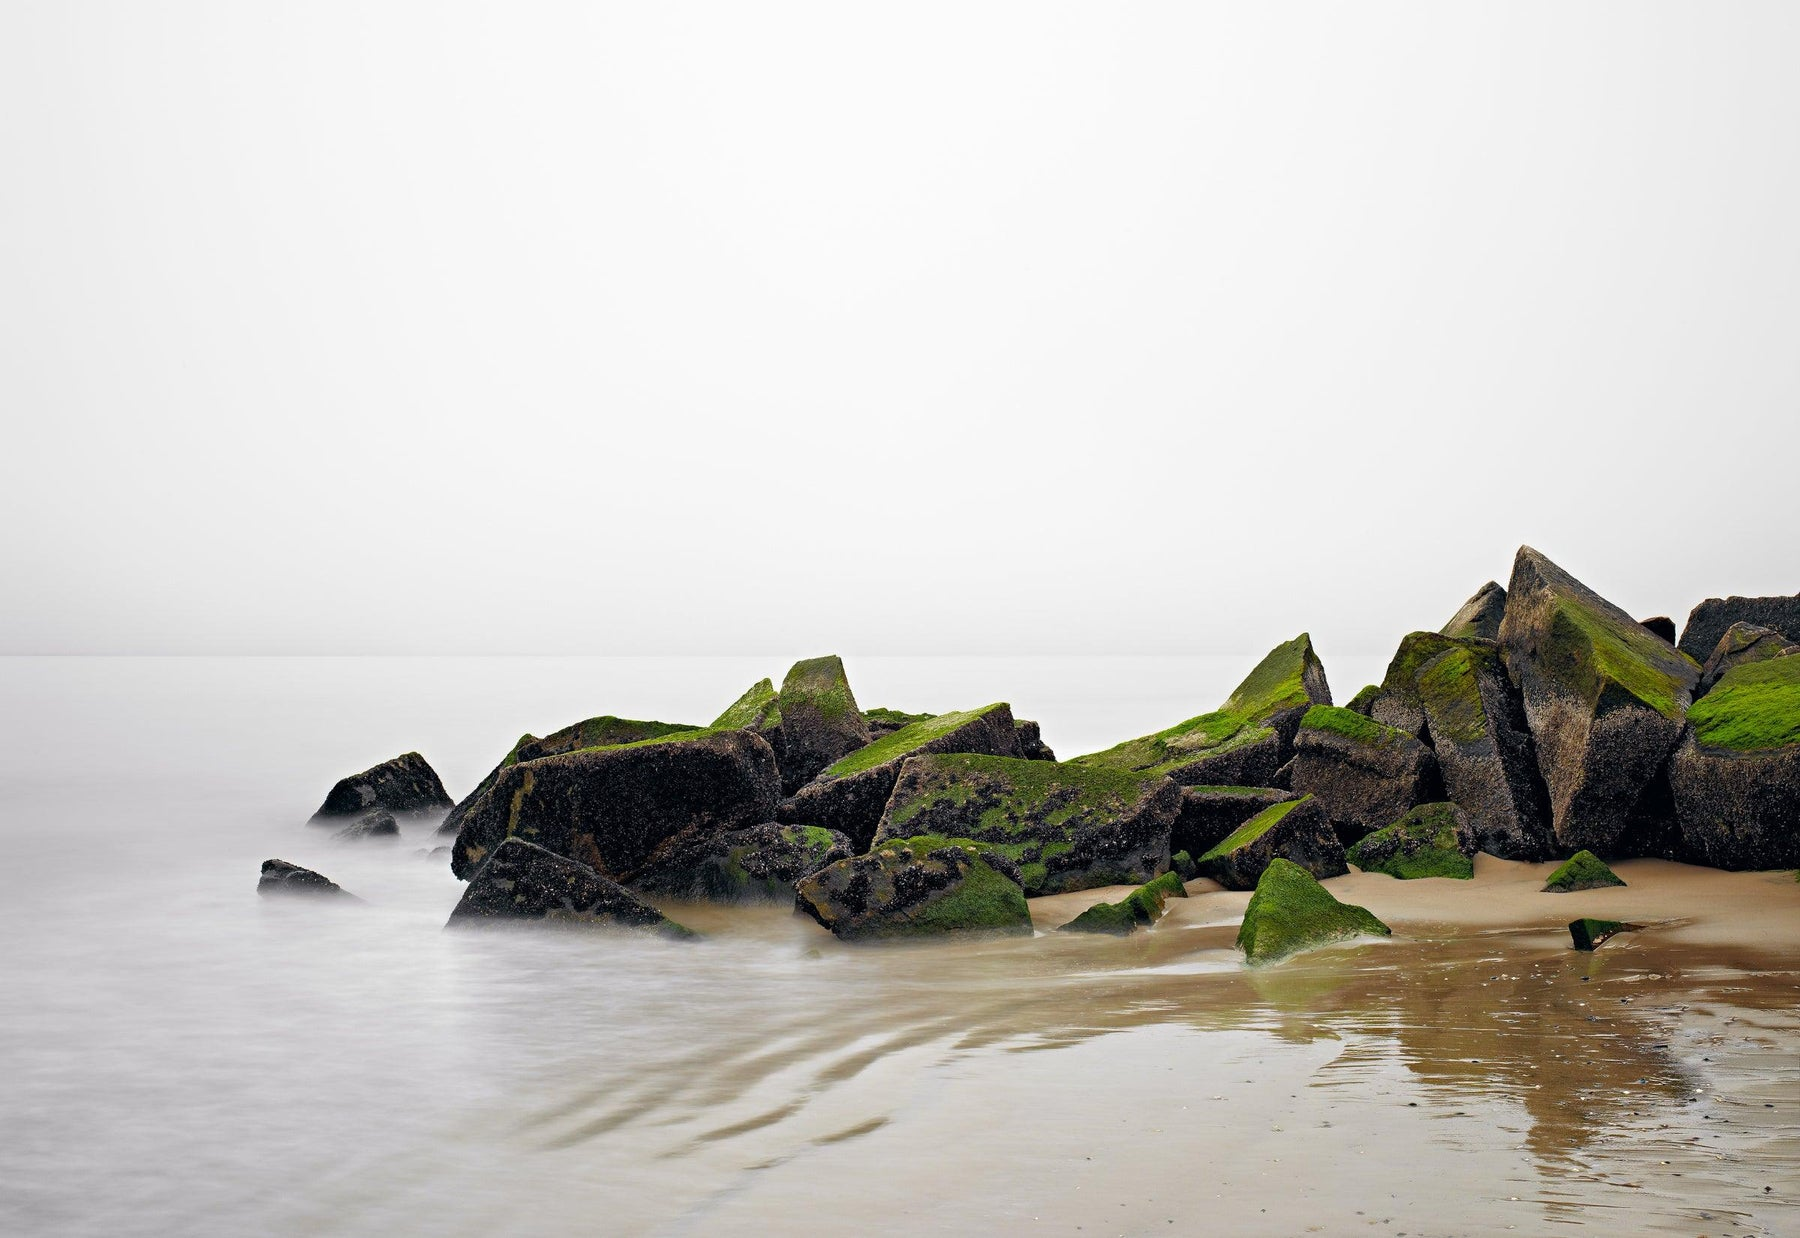 Moss covered rocks on the beach on the waters edge of Coney Island New York